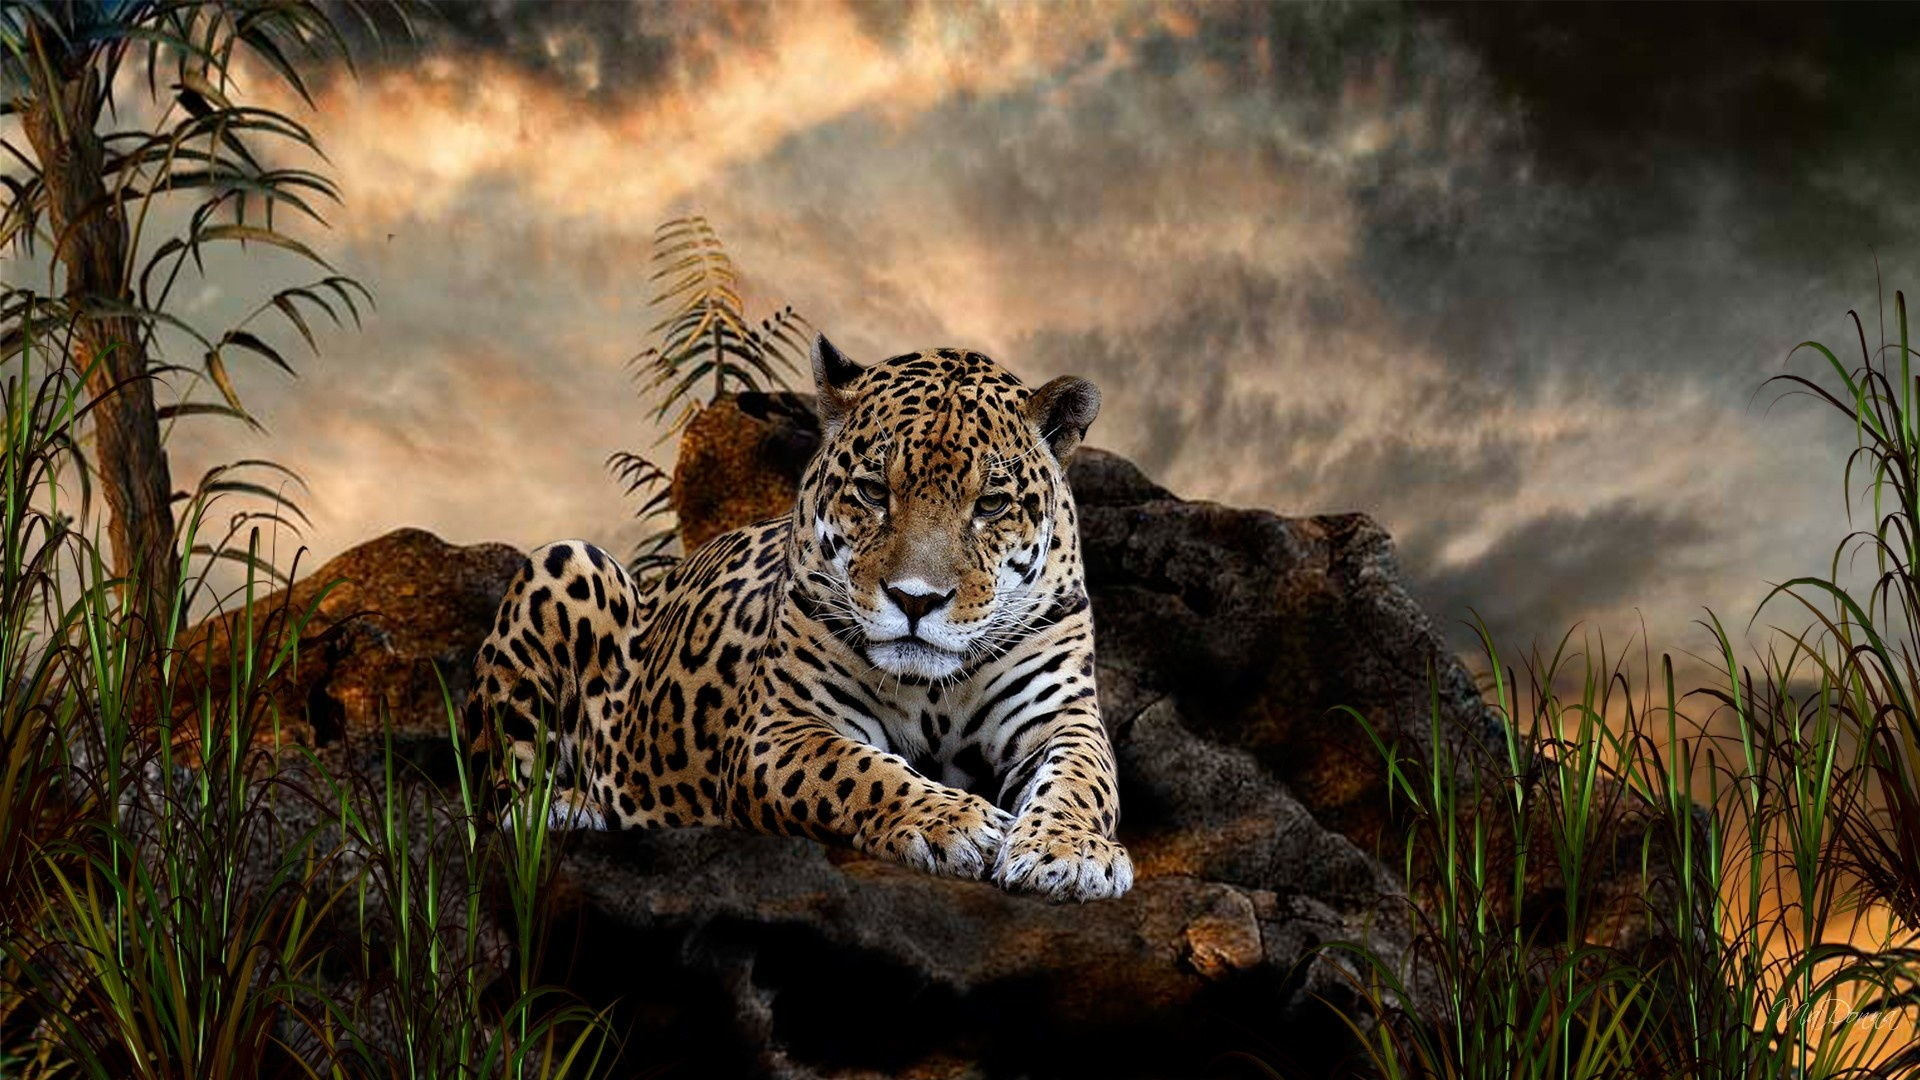 Animal HD Wallpaper – Get the Newest Collection of Animal HD Wallpaper for  your Desktop PCs